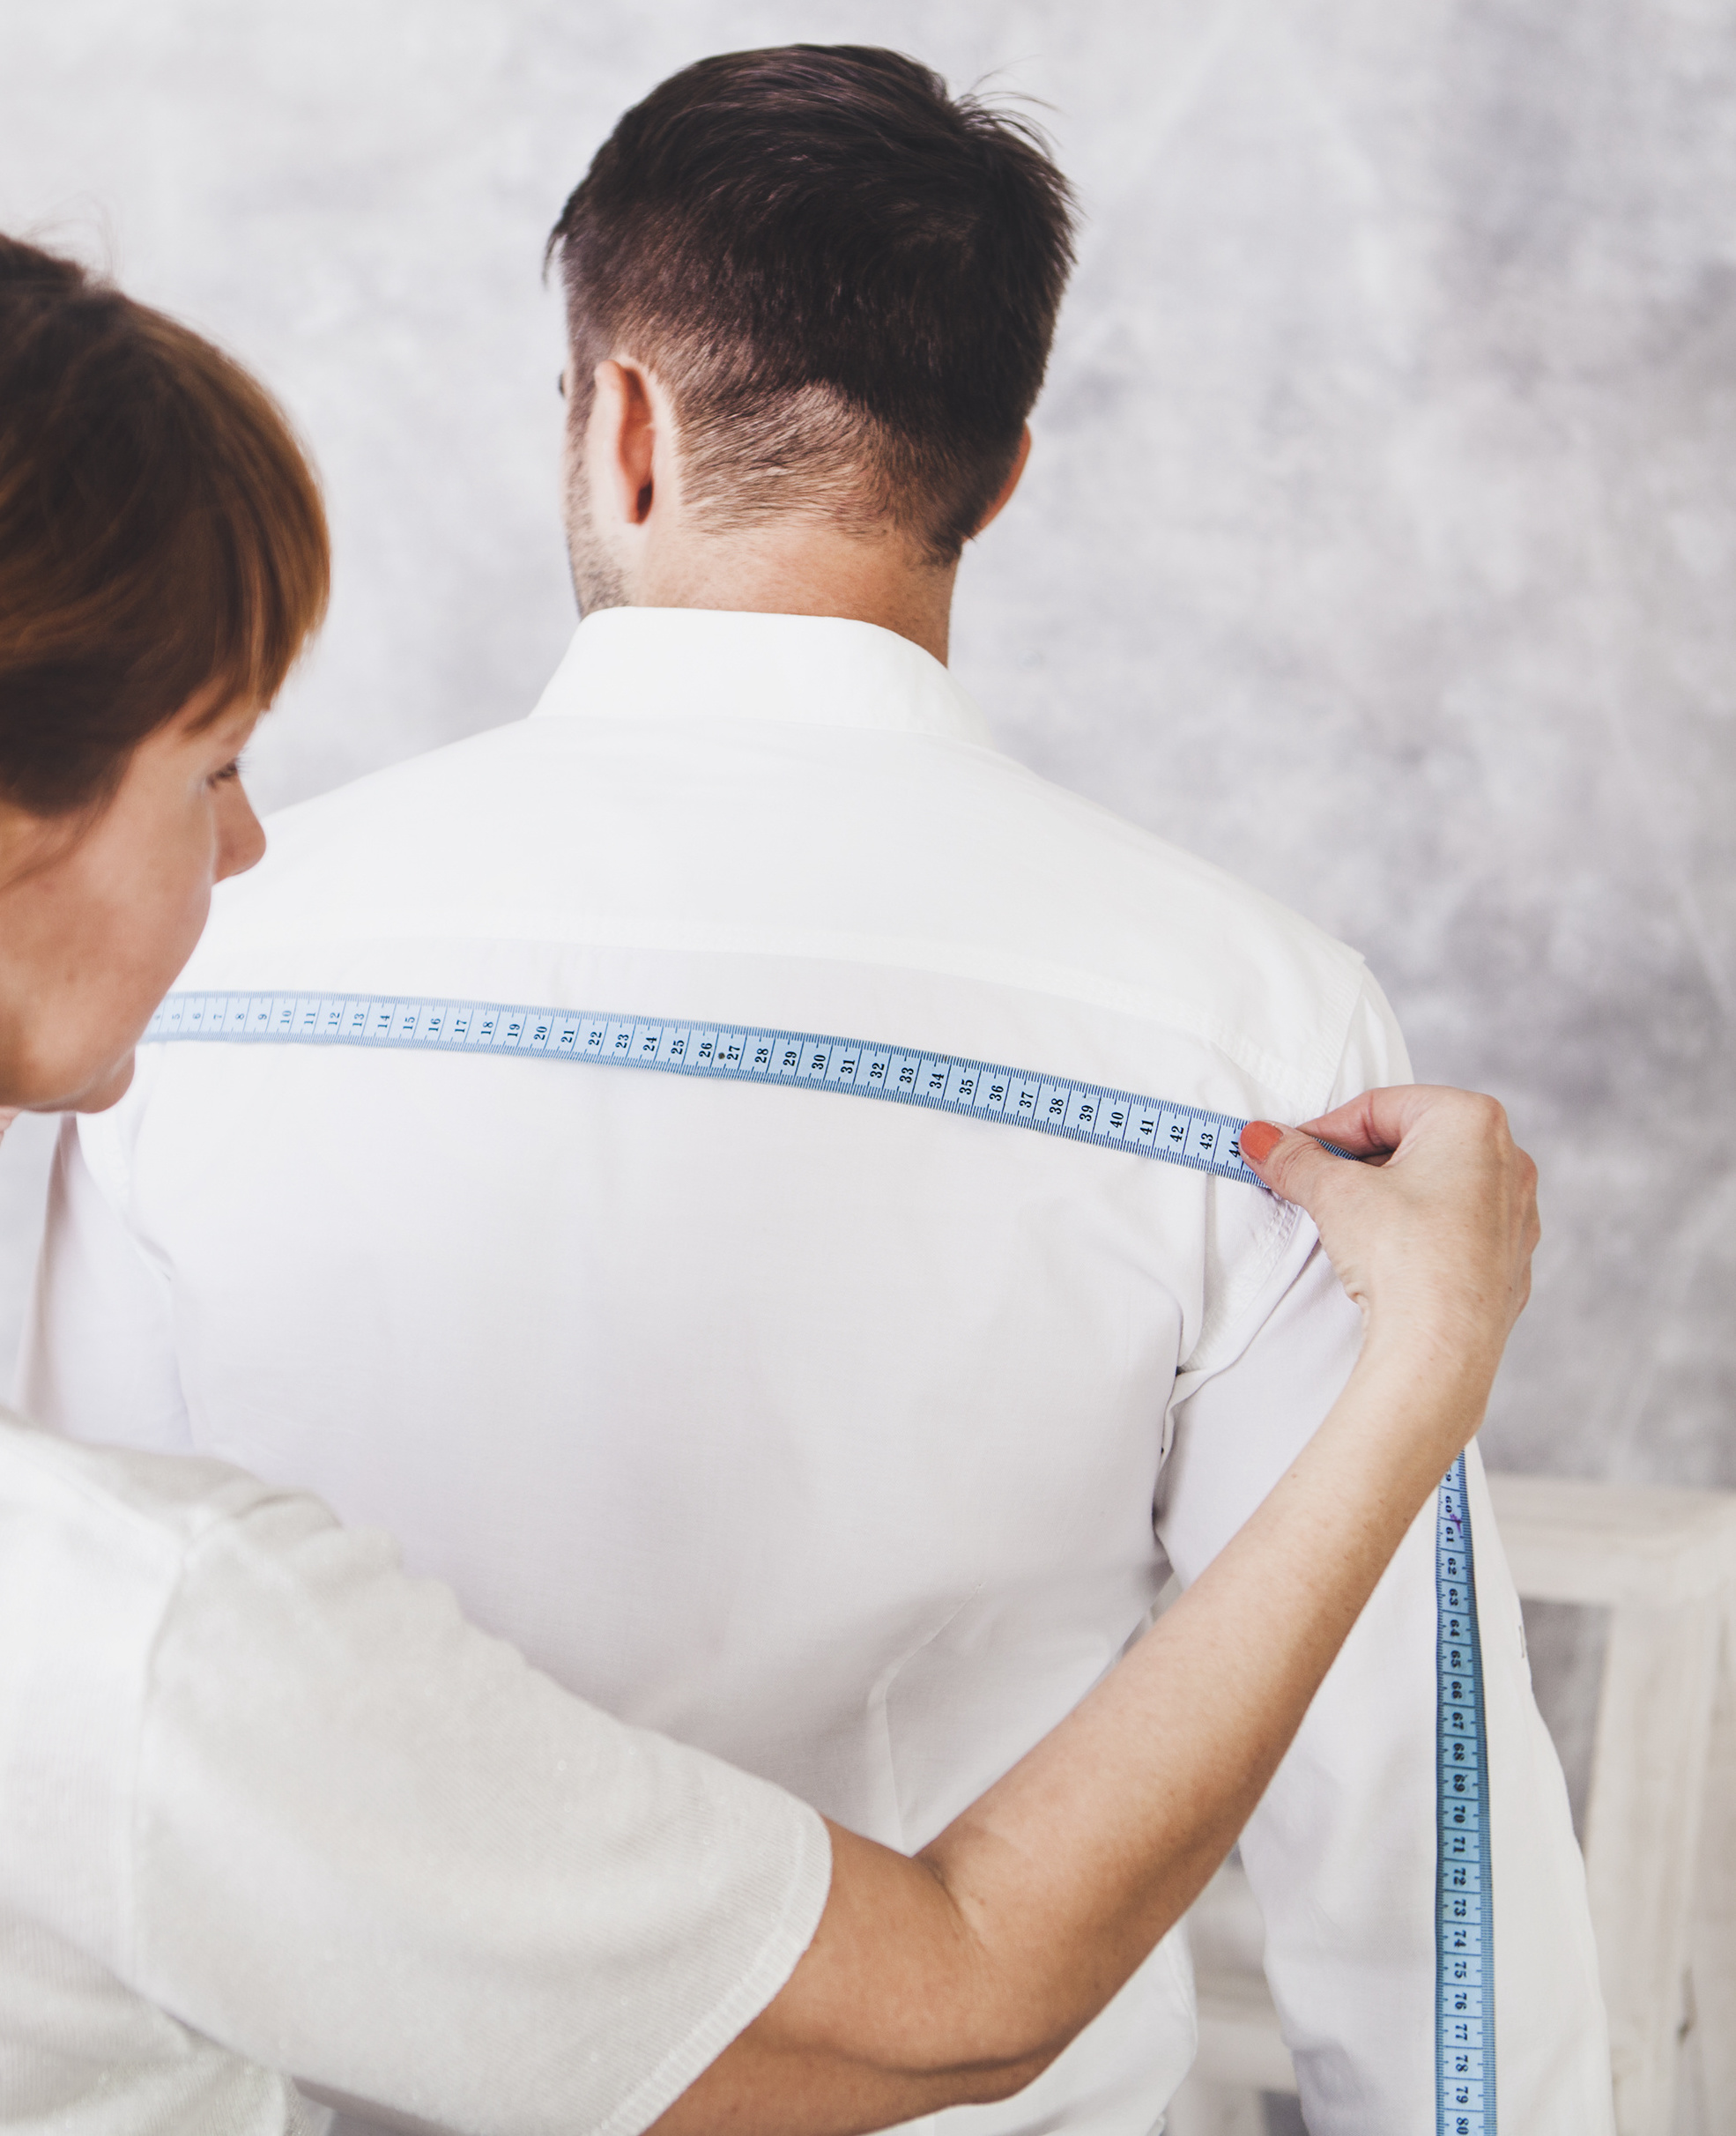 A tailor takes the measurements of the Dress Shirt.